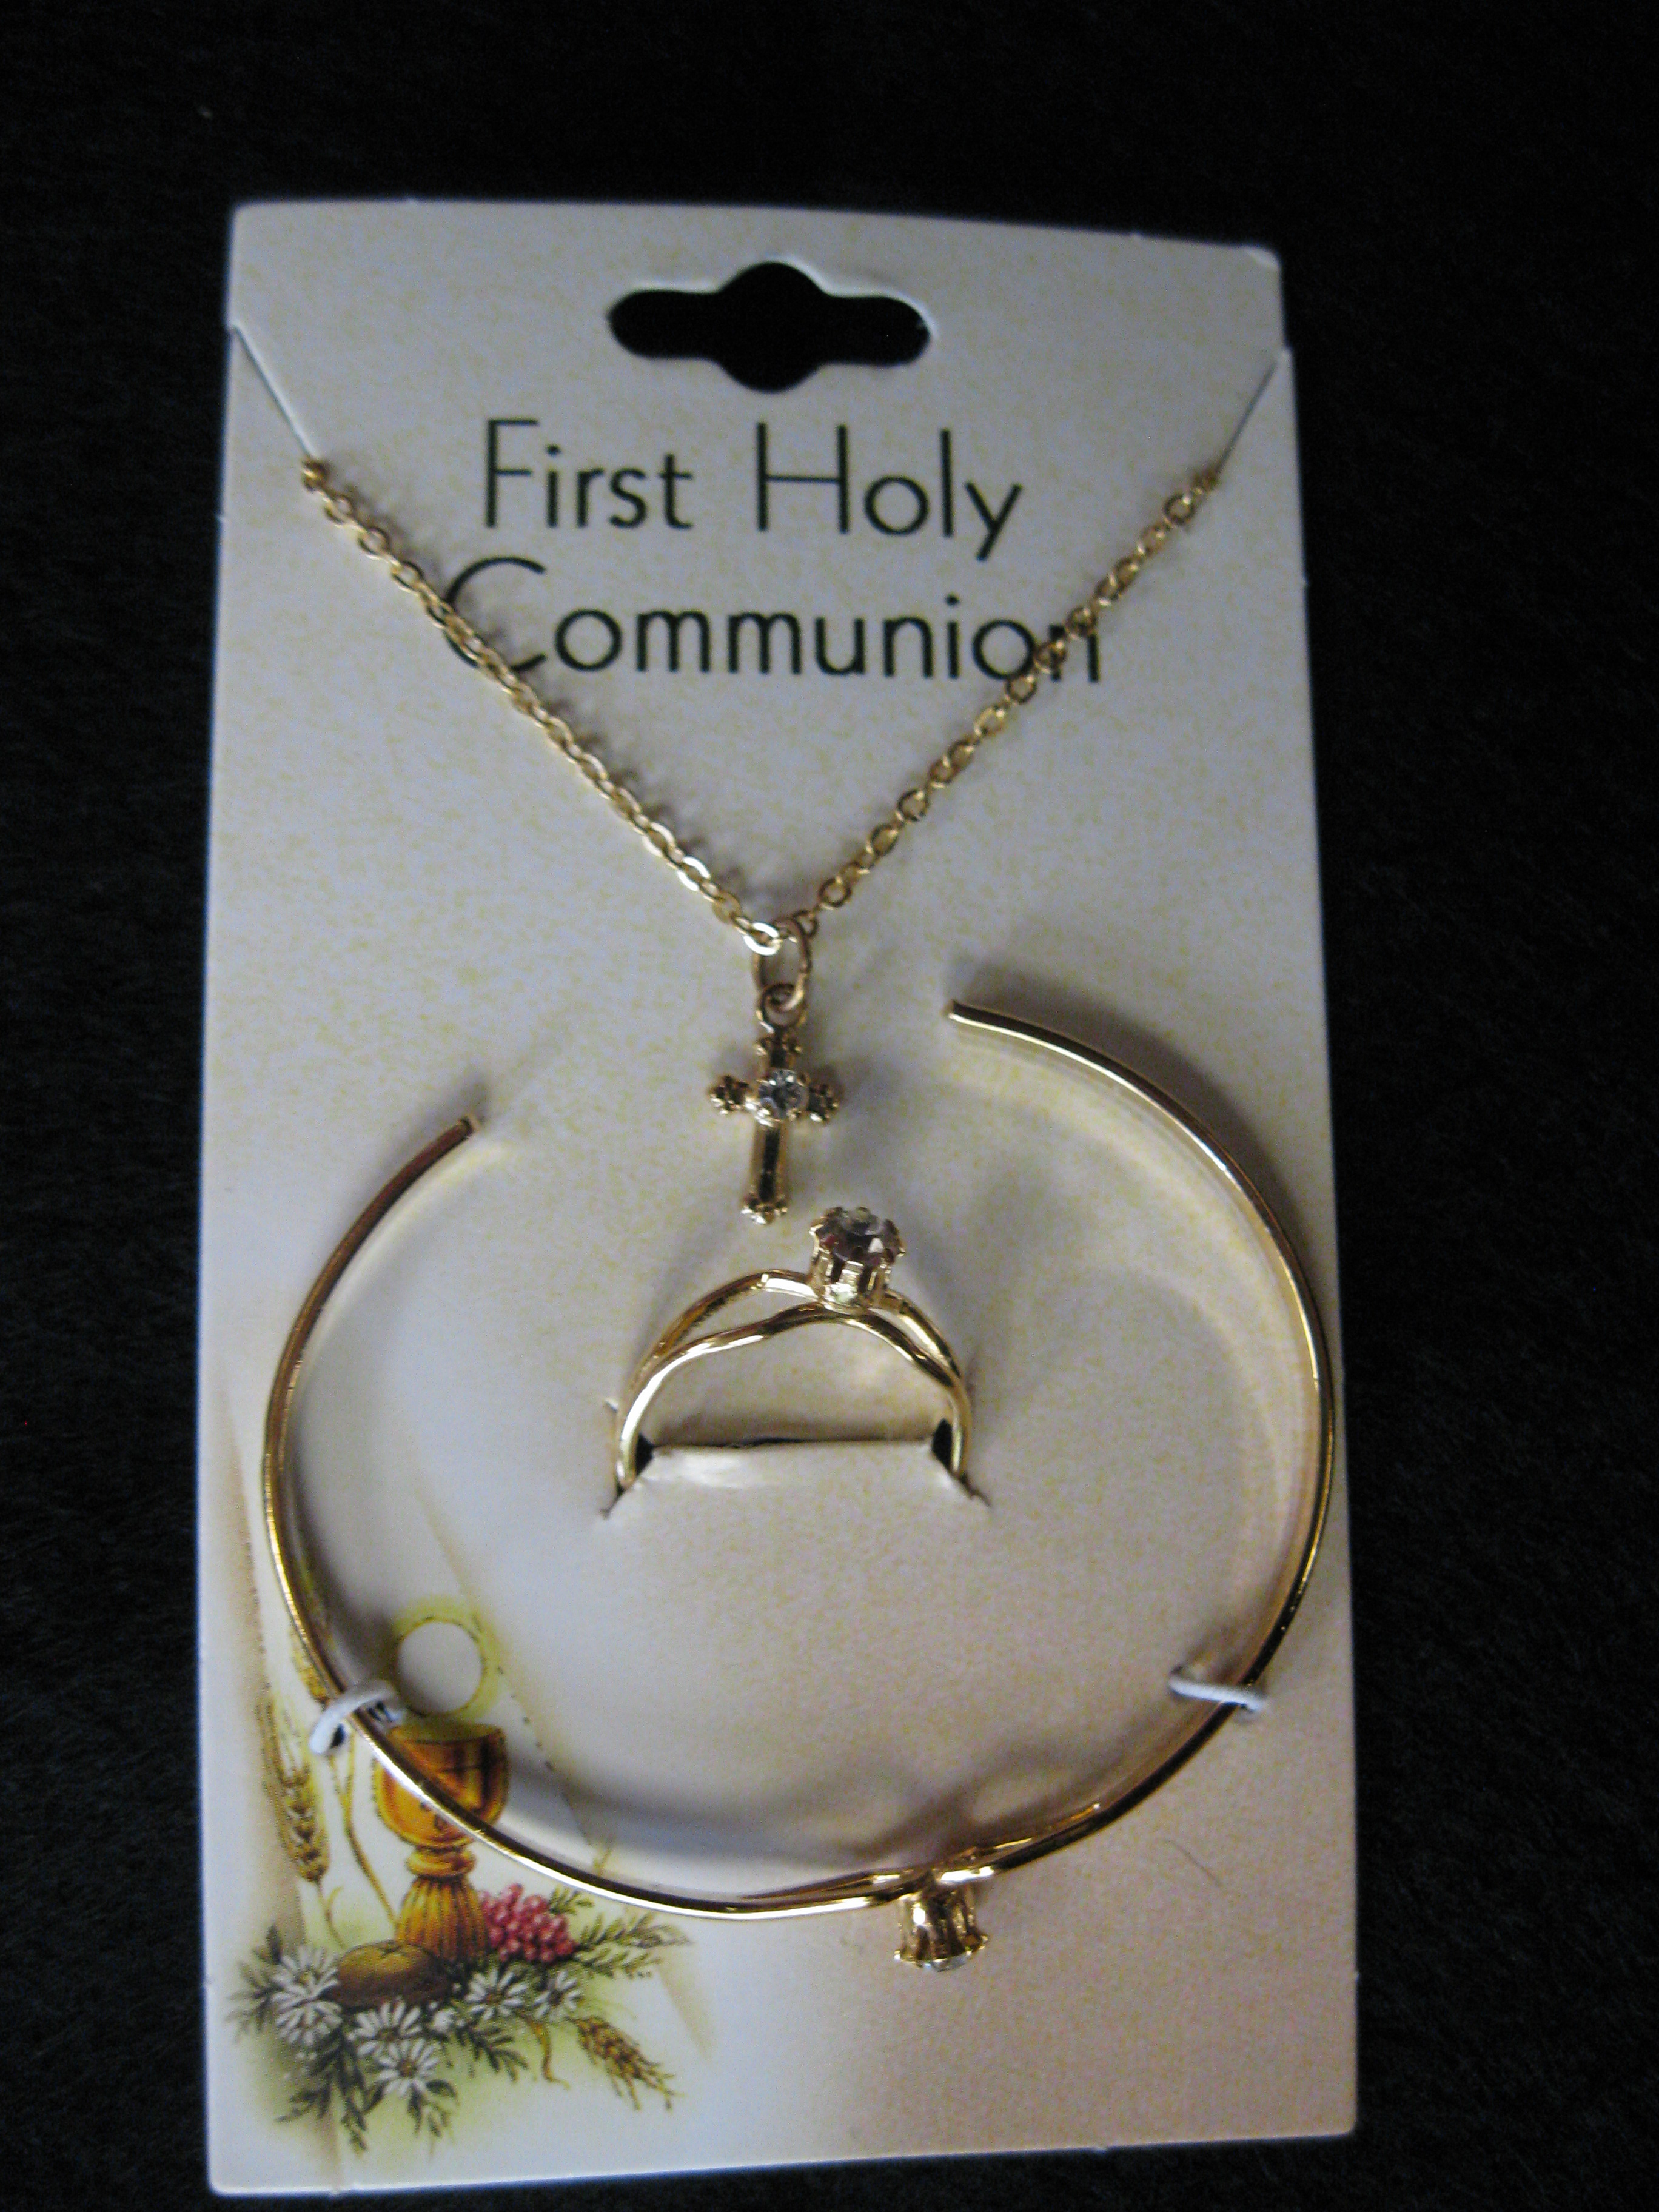 First Holy Communion Jewelry Set